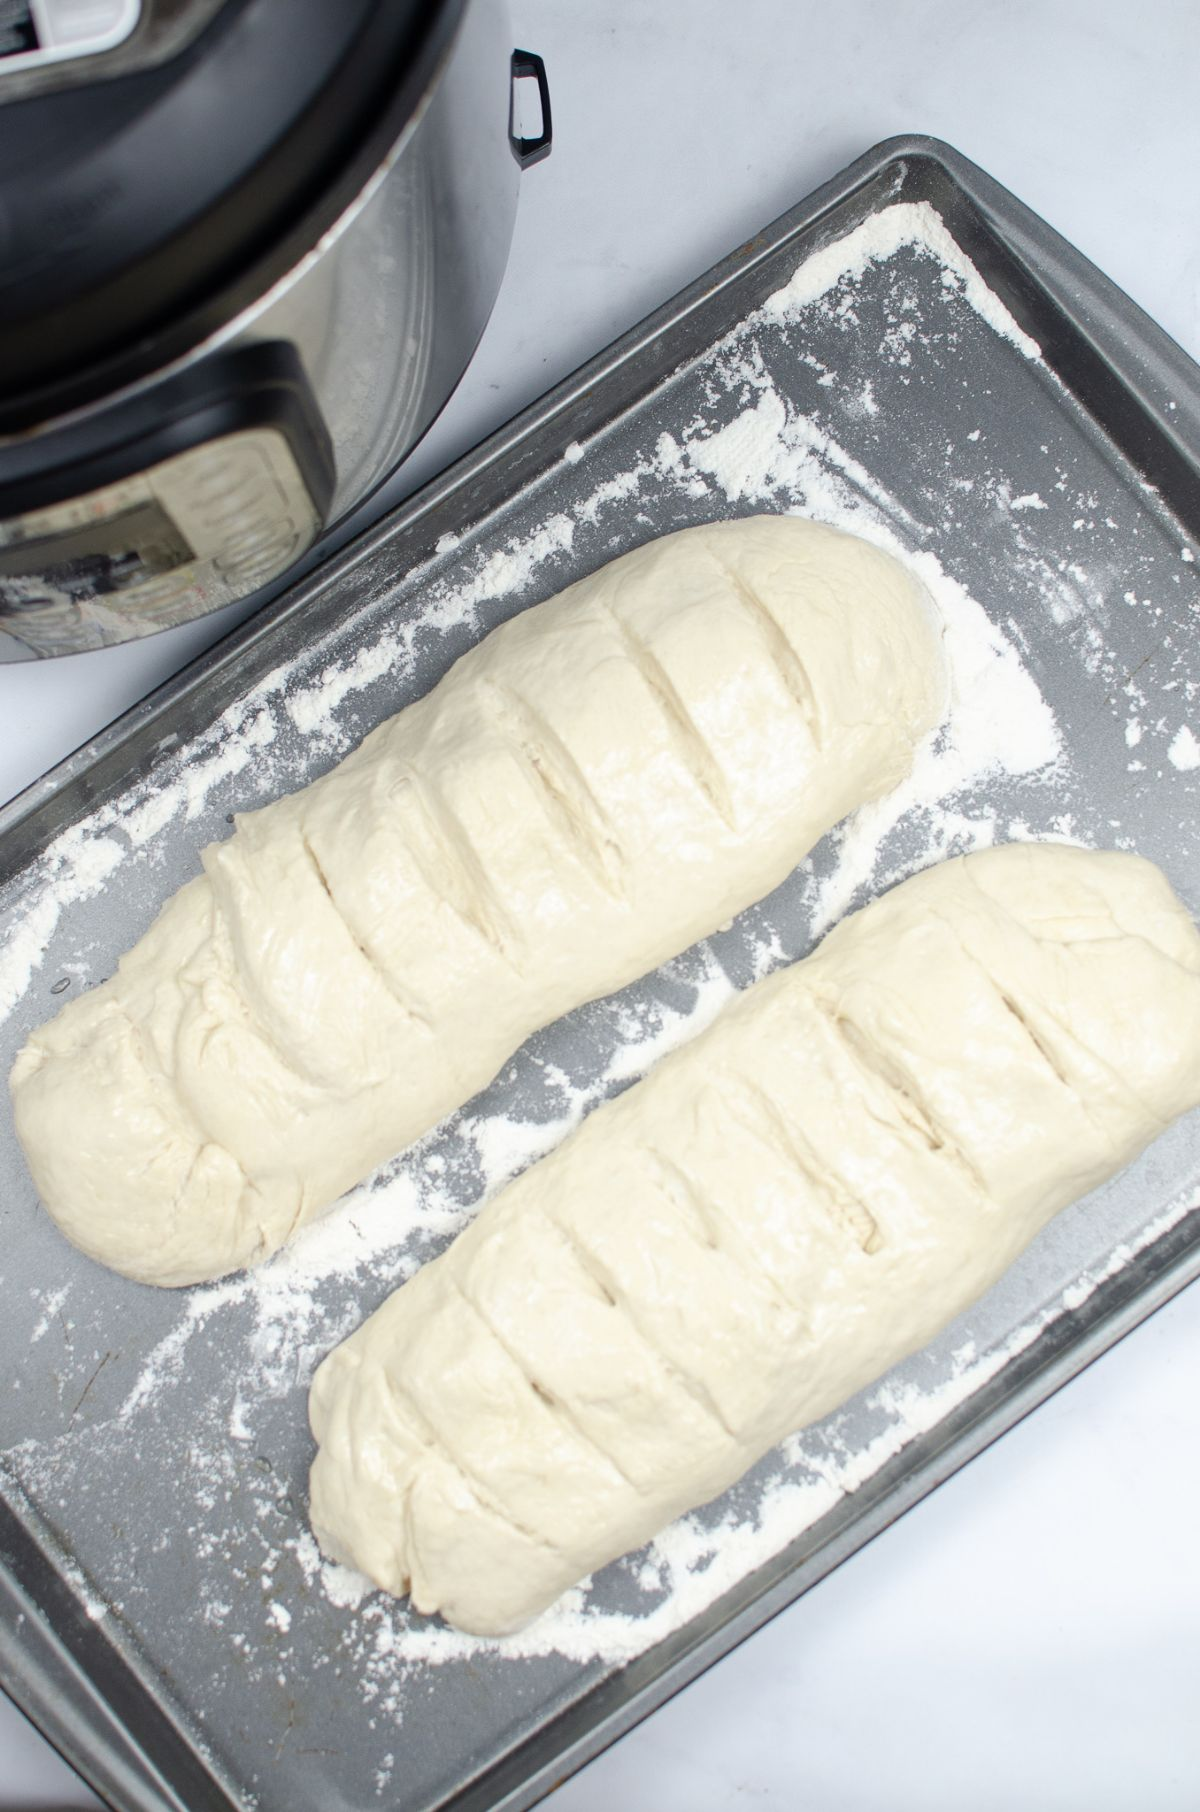 Dough formed in the shape of a long loaf with the top part scored with a knife.